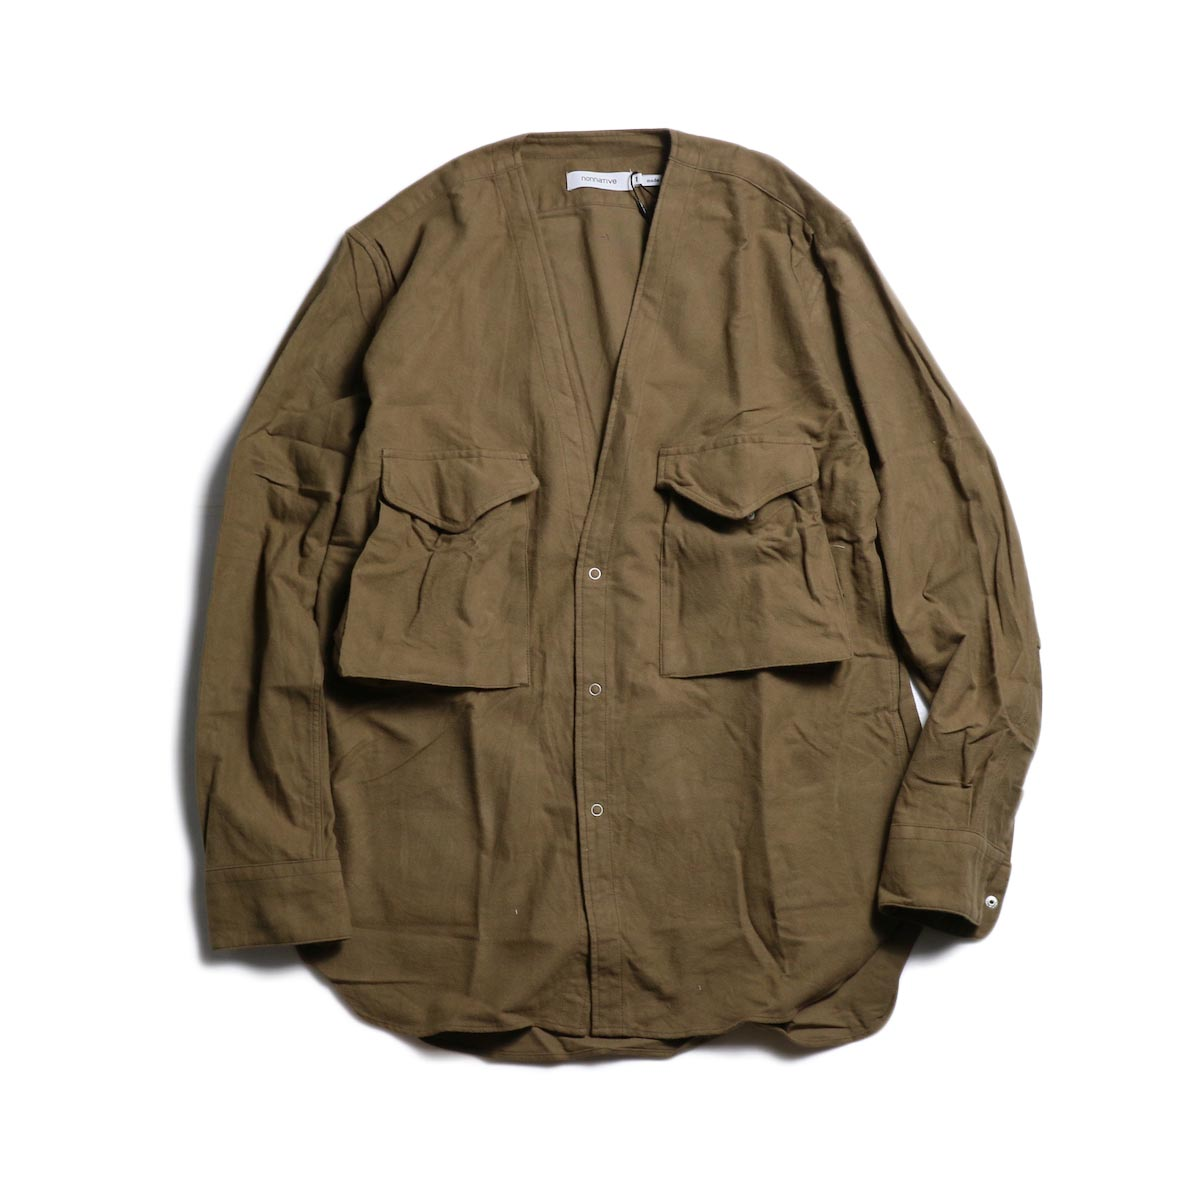 nonnative / CARPENTER SHIRT JACKET COTTON FLANNEL -Beige 正面